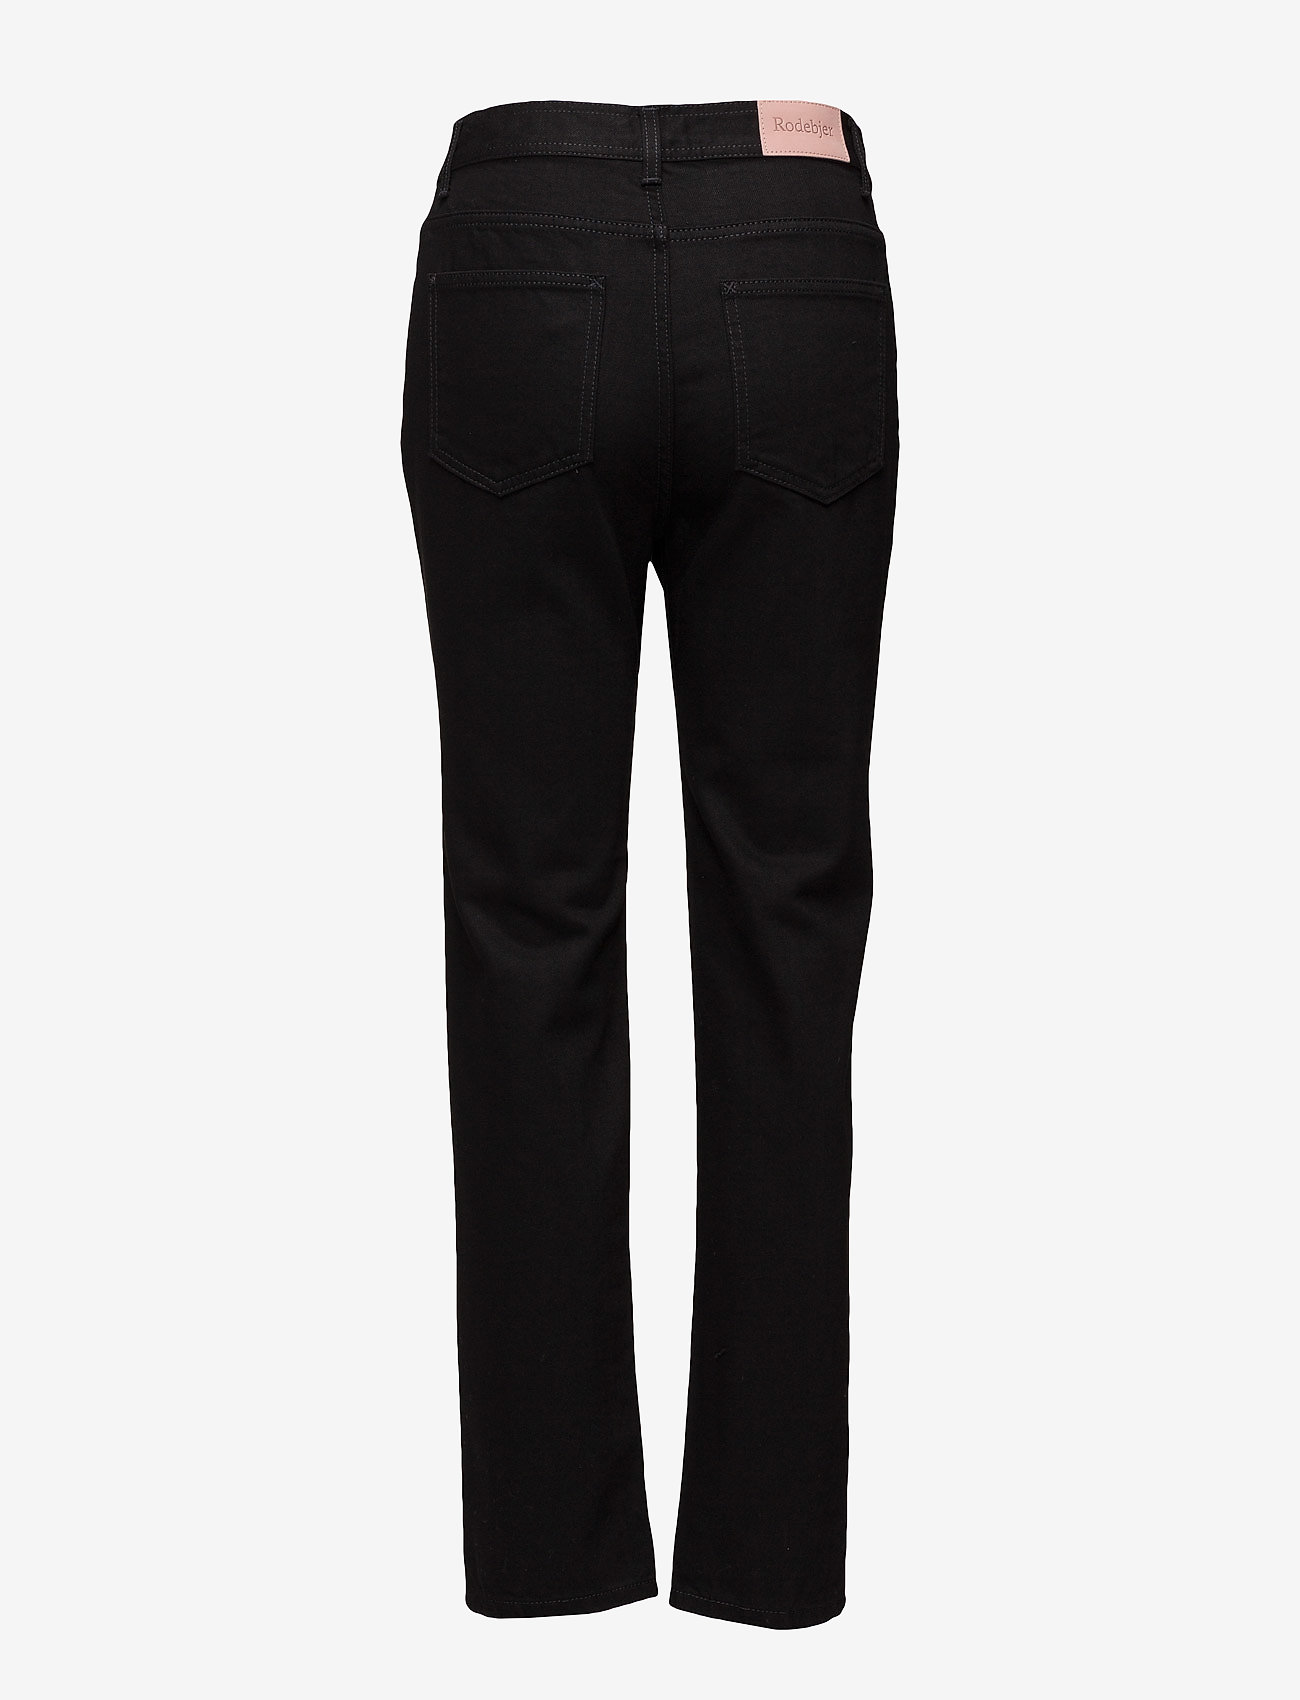 RODEBJER - SUSAN - straight jeans - black - 1